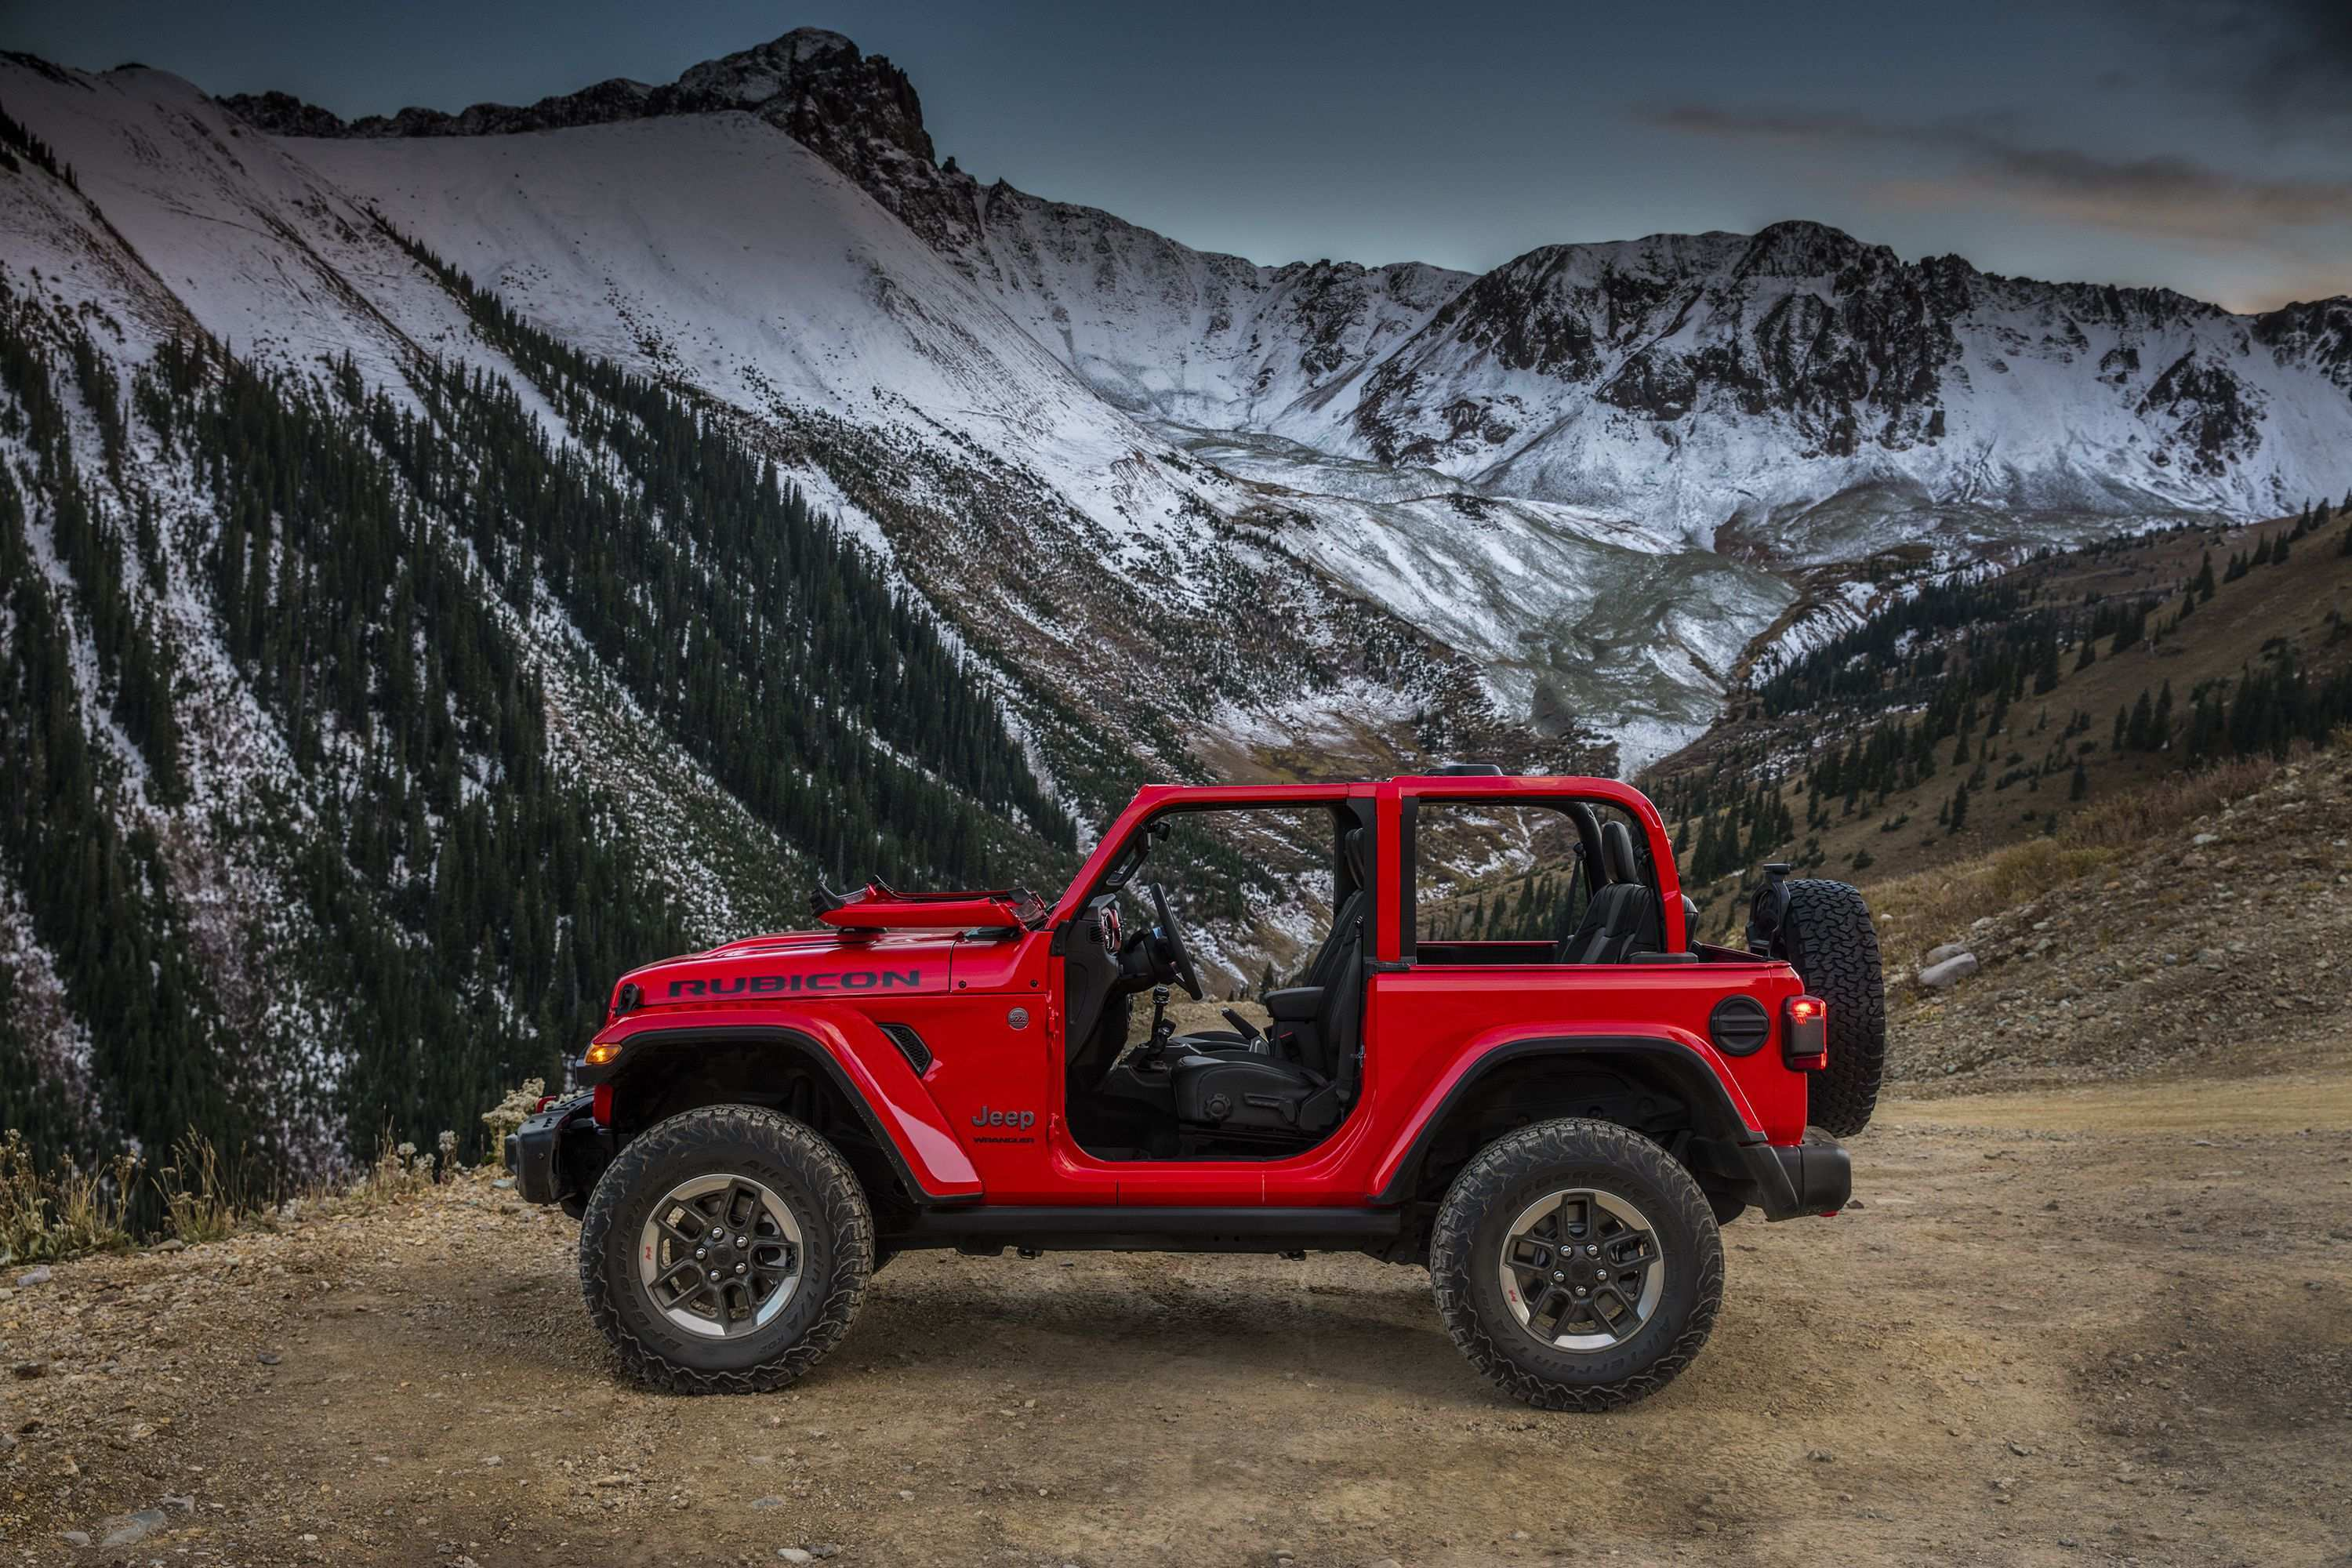 45 All New The When Can You Order 2019 Jeep Wrangler Spy Shoot Interior by The When Can You Order 2019 Jeep Wrangler Spy Shoot